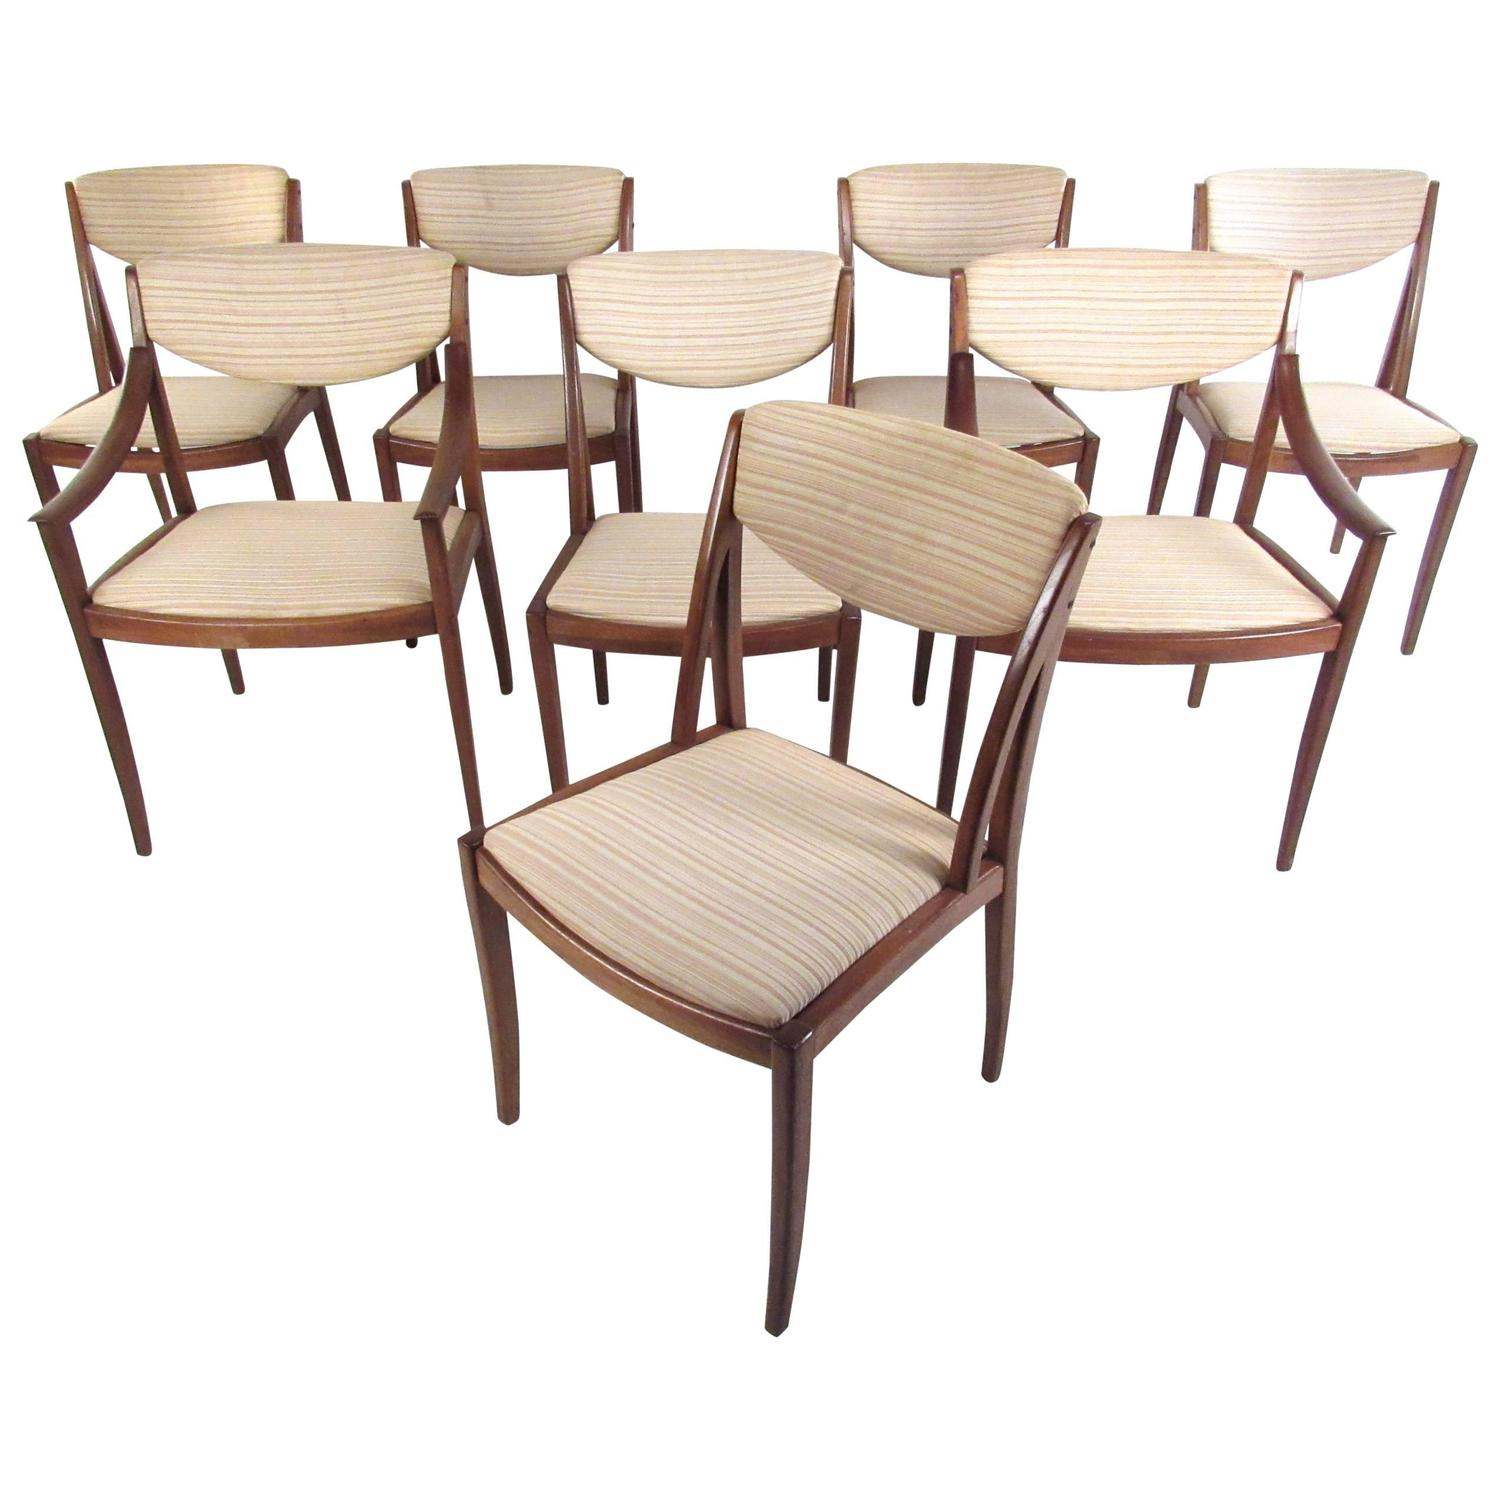 Mid Century Furniture Dining Room: Mid-Century American Walnut Dining Chairs By Drexel For